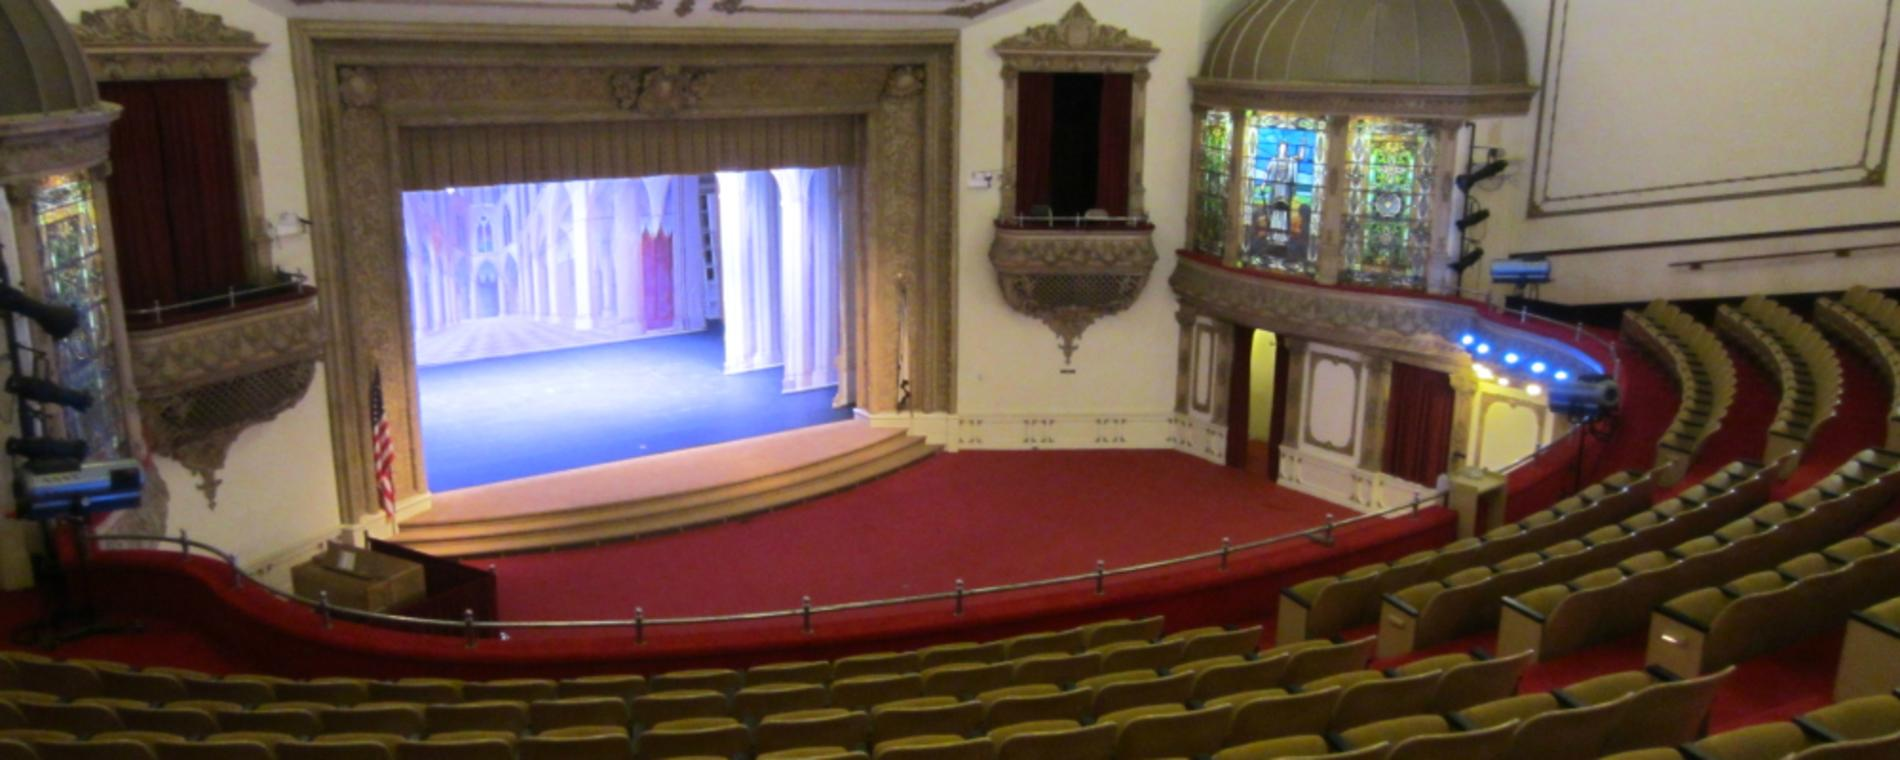 WSR Auditorium Visit Wichita